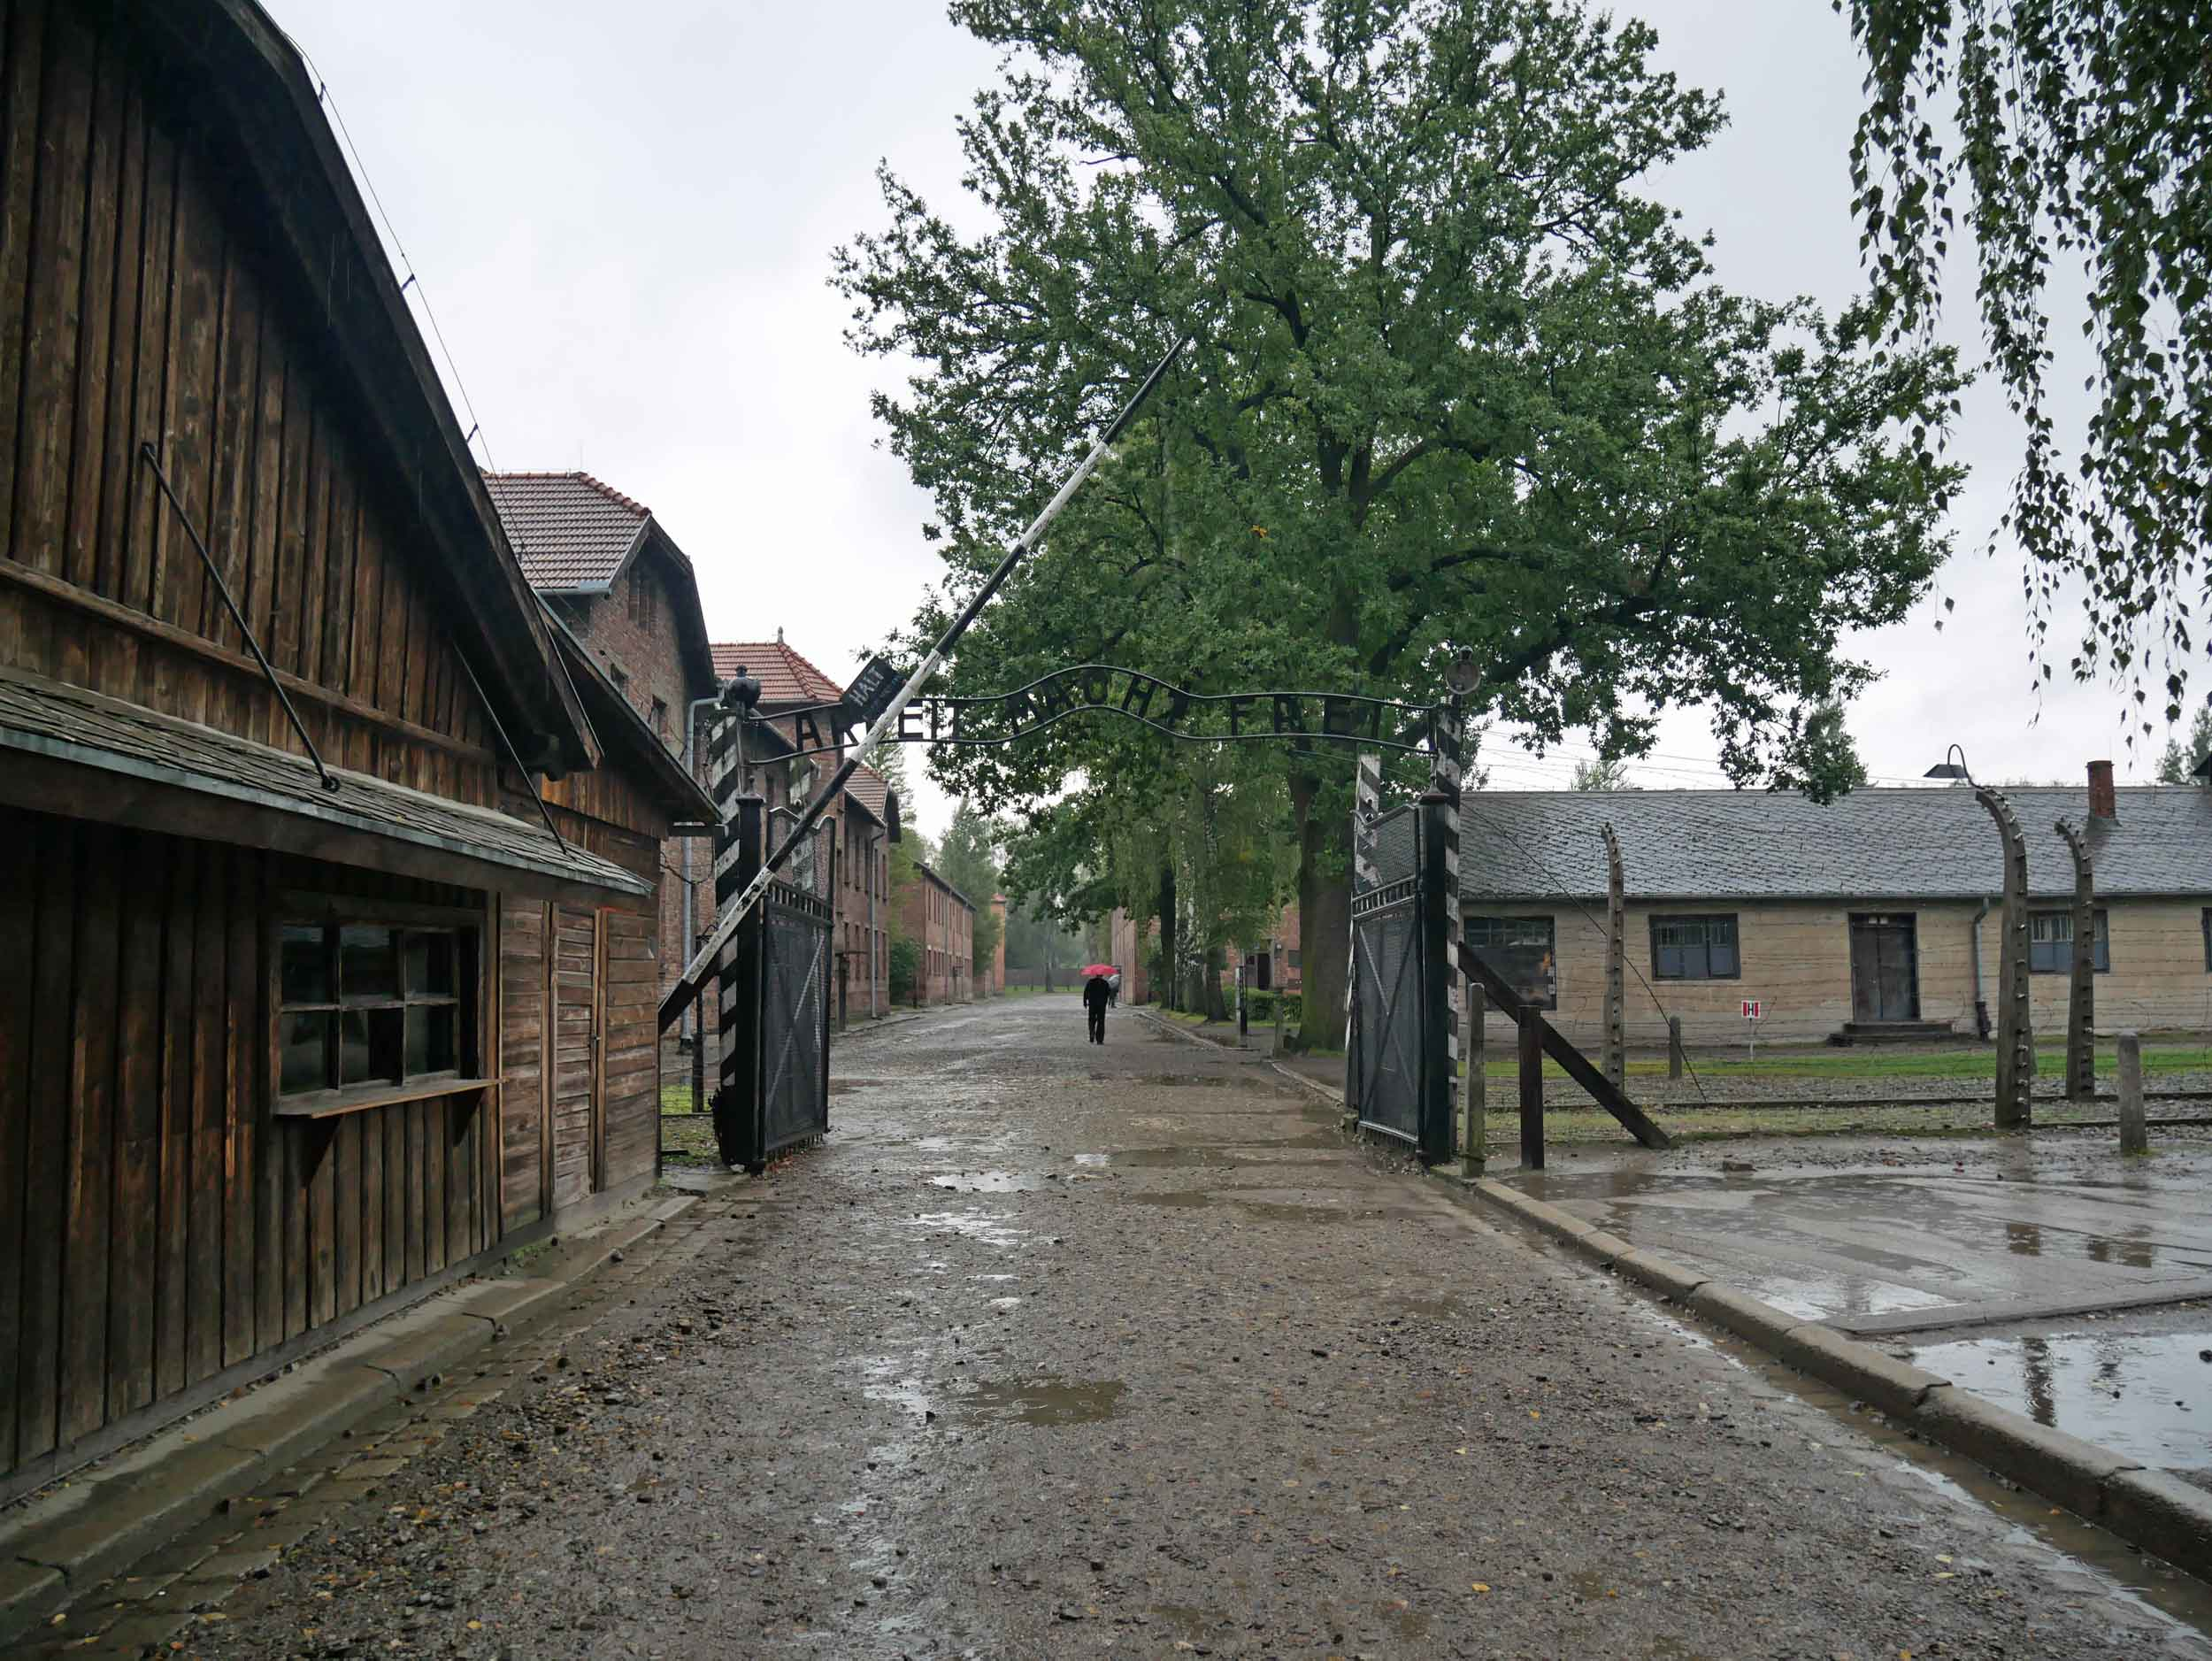 """The gates to hell at Auschwitz Concentration Camp read, """"Arbeit macht frei"""" is a German phrase meaning """"work sets you free"""" (Sept 3)."""